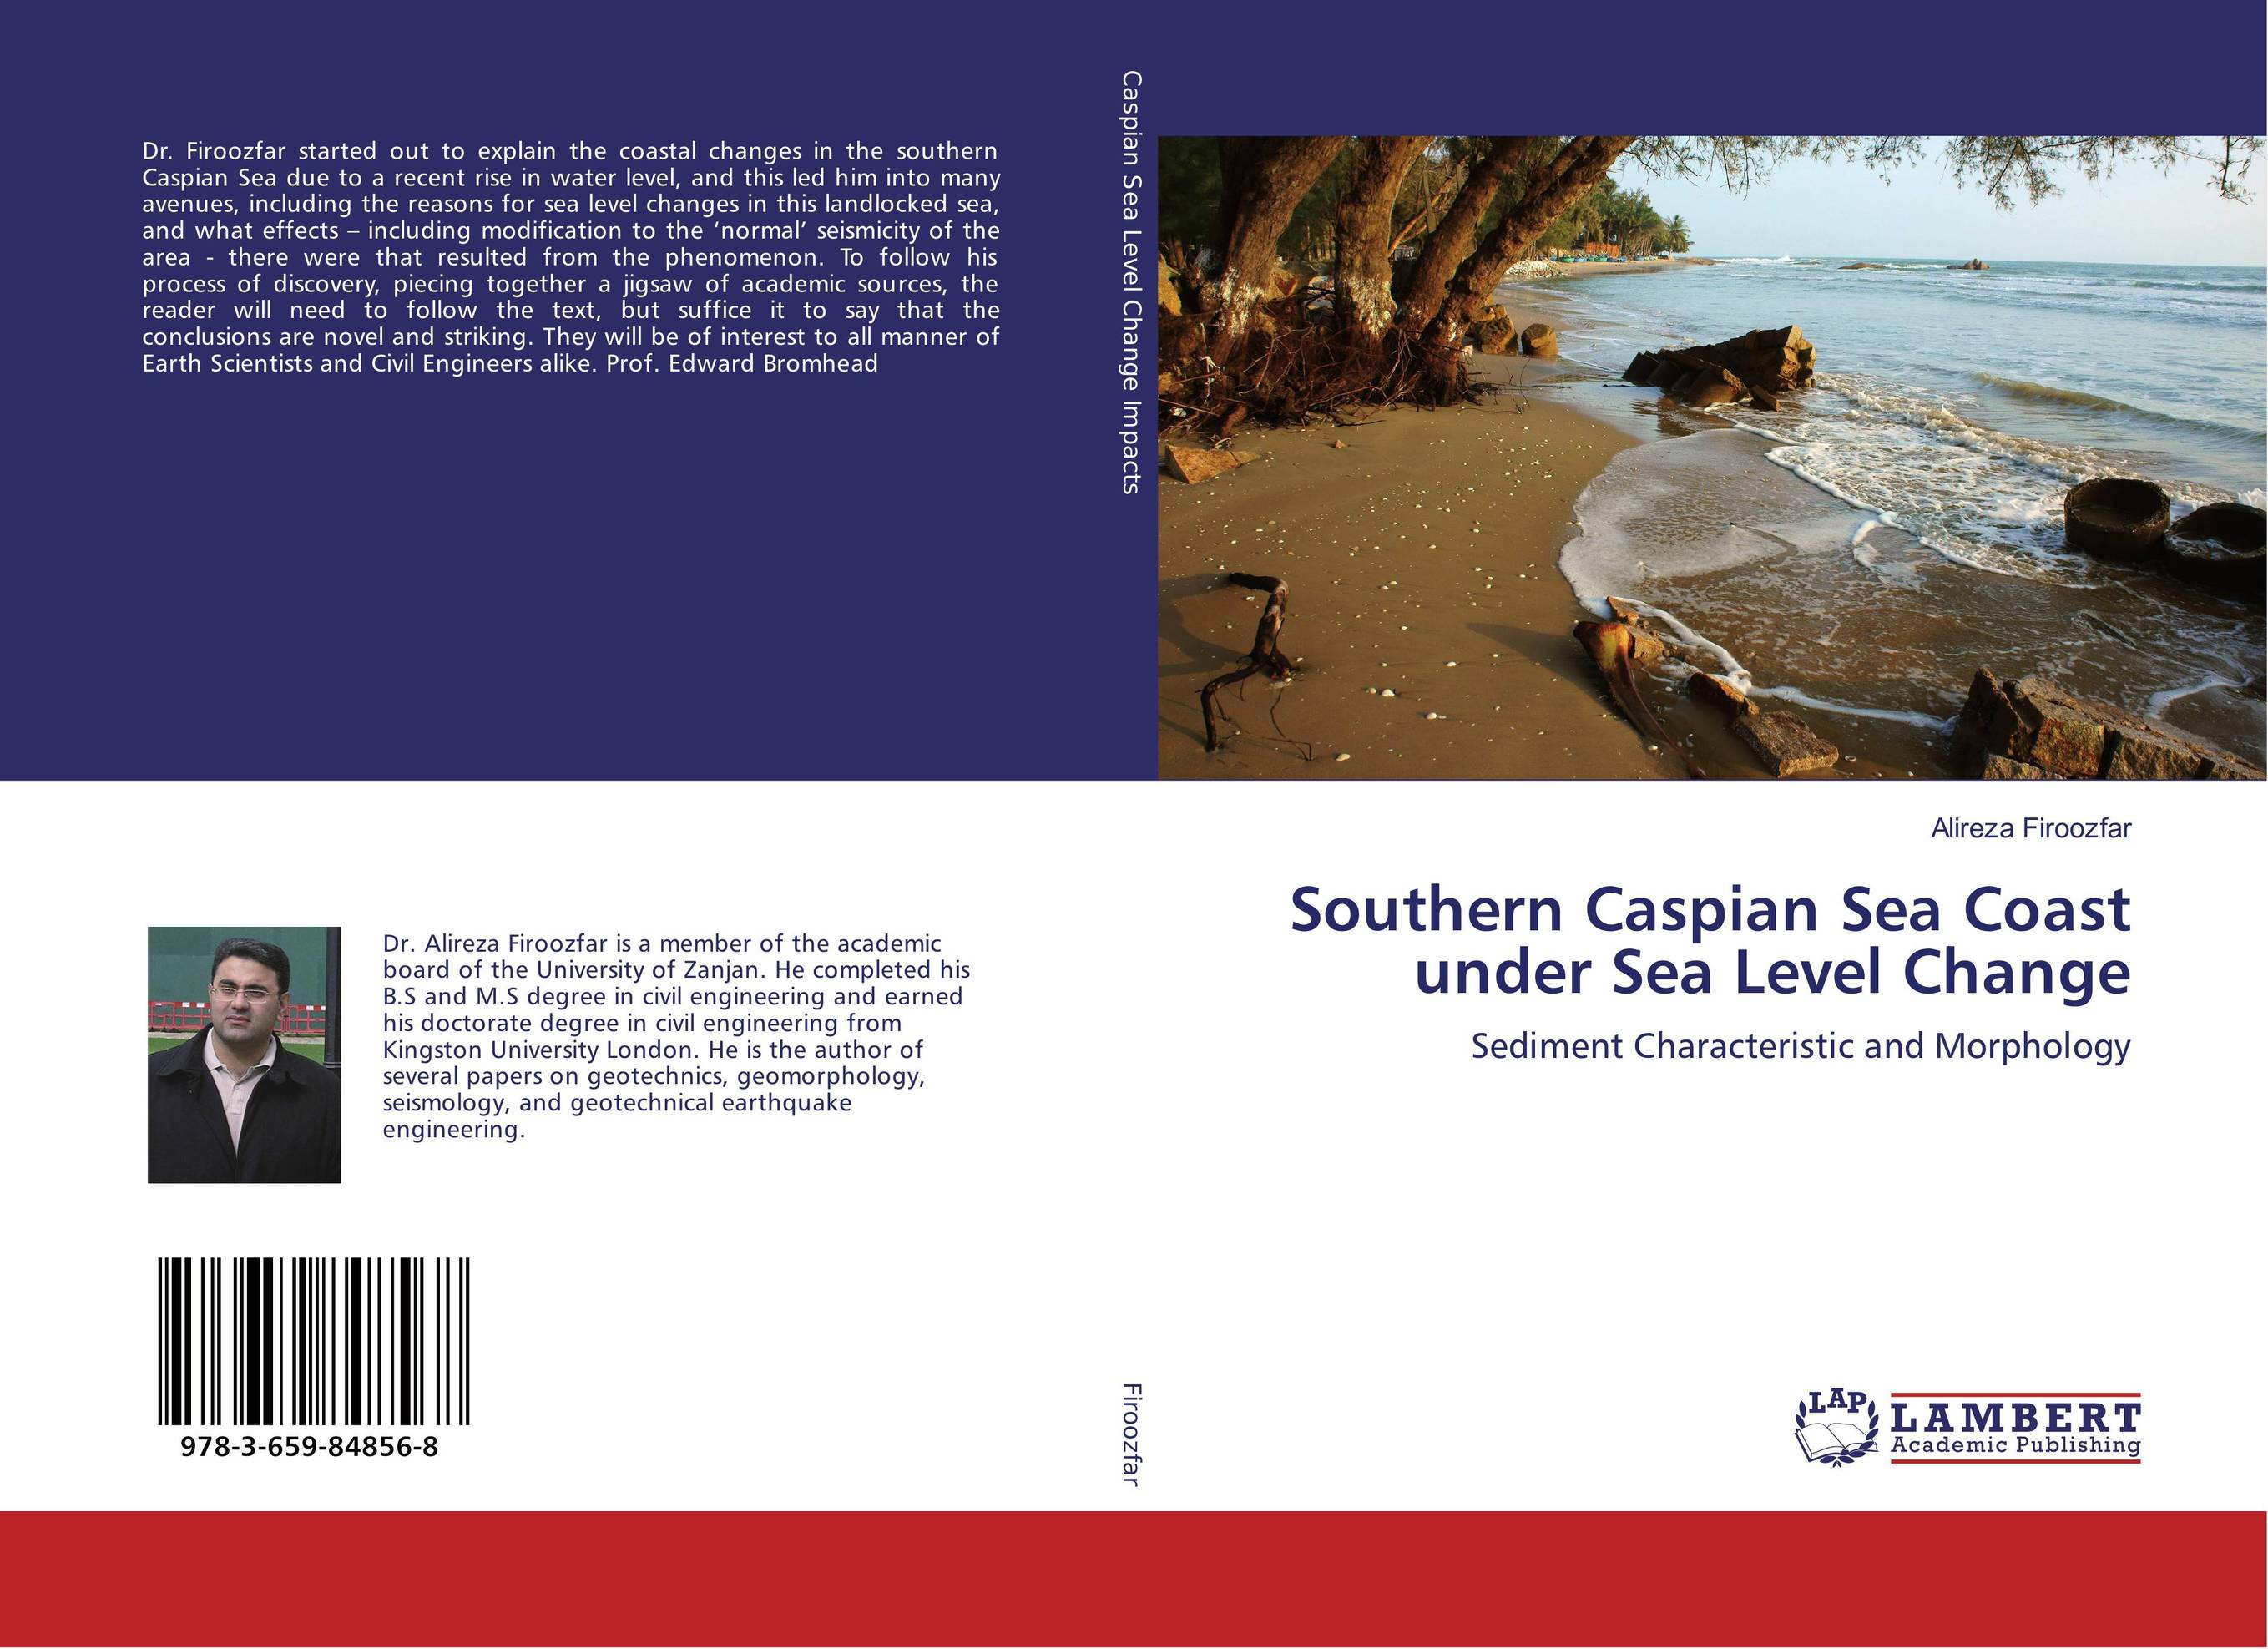 Southern Caspian Sea Coast under Sea Level Change in the sea there are crocodiles